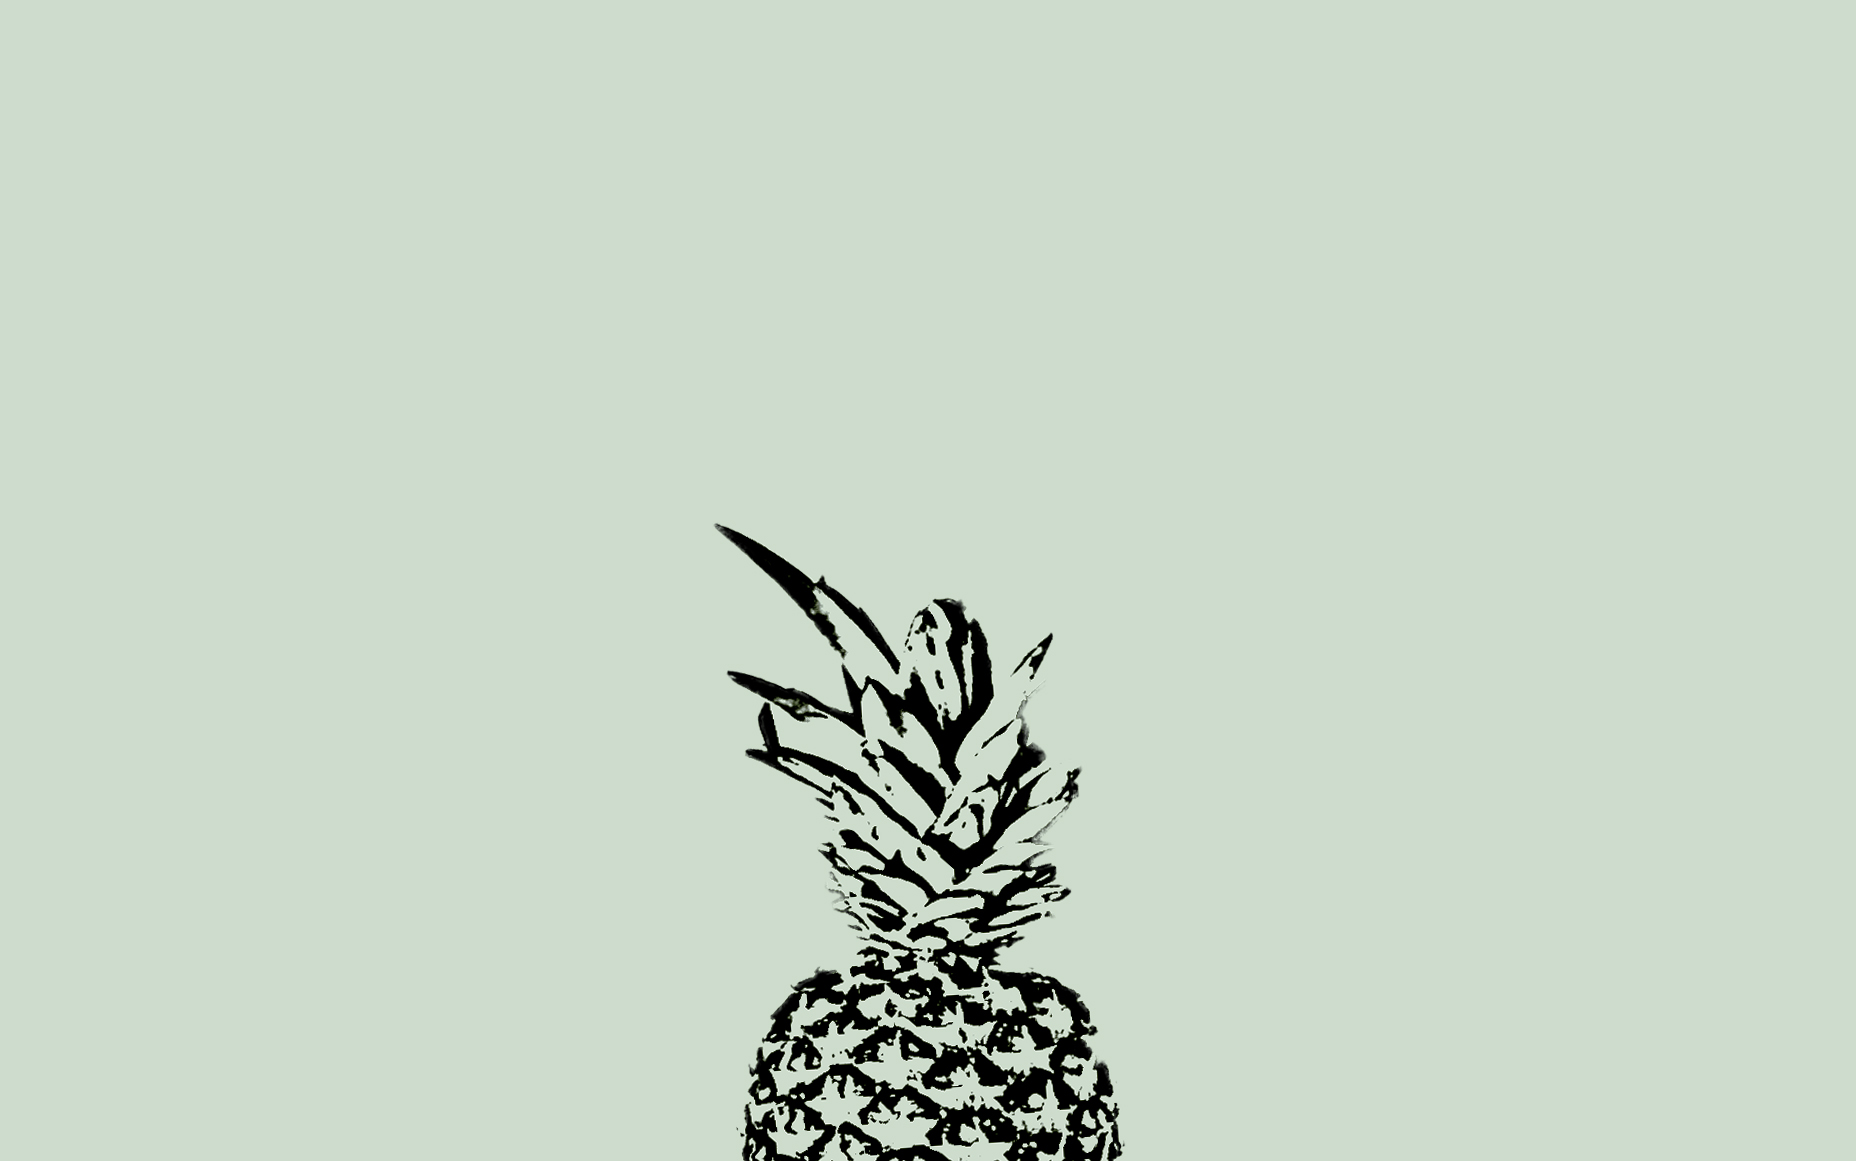 minimal pastel sage green black pineapple desktop wallpaper background background pinterest wallpaper backgrounds wallpaper and prints